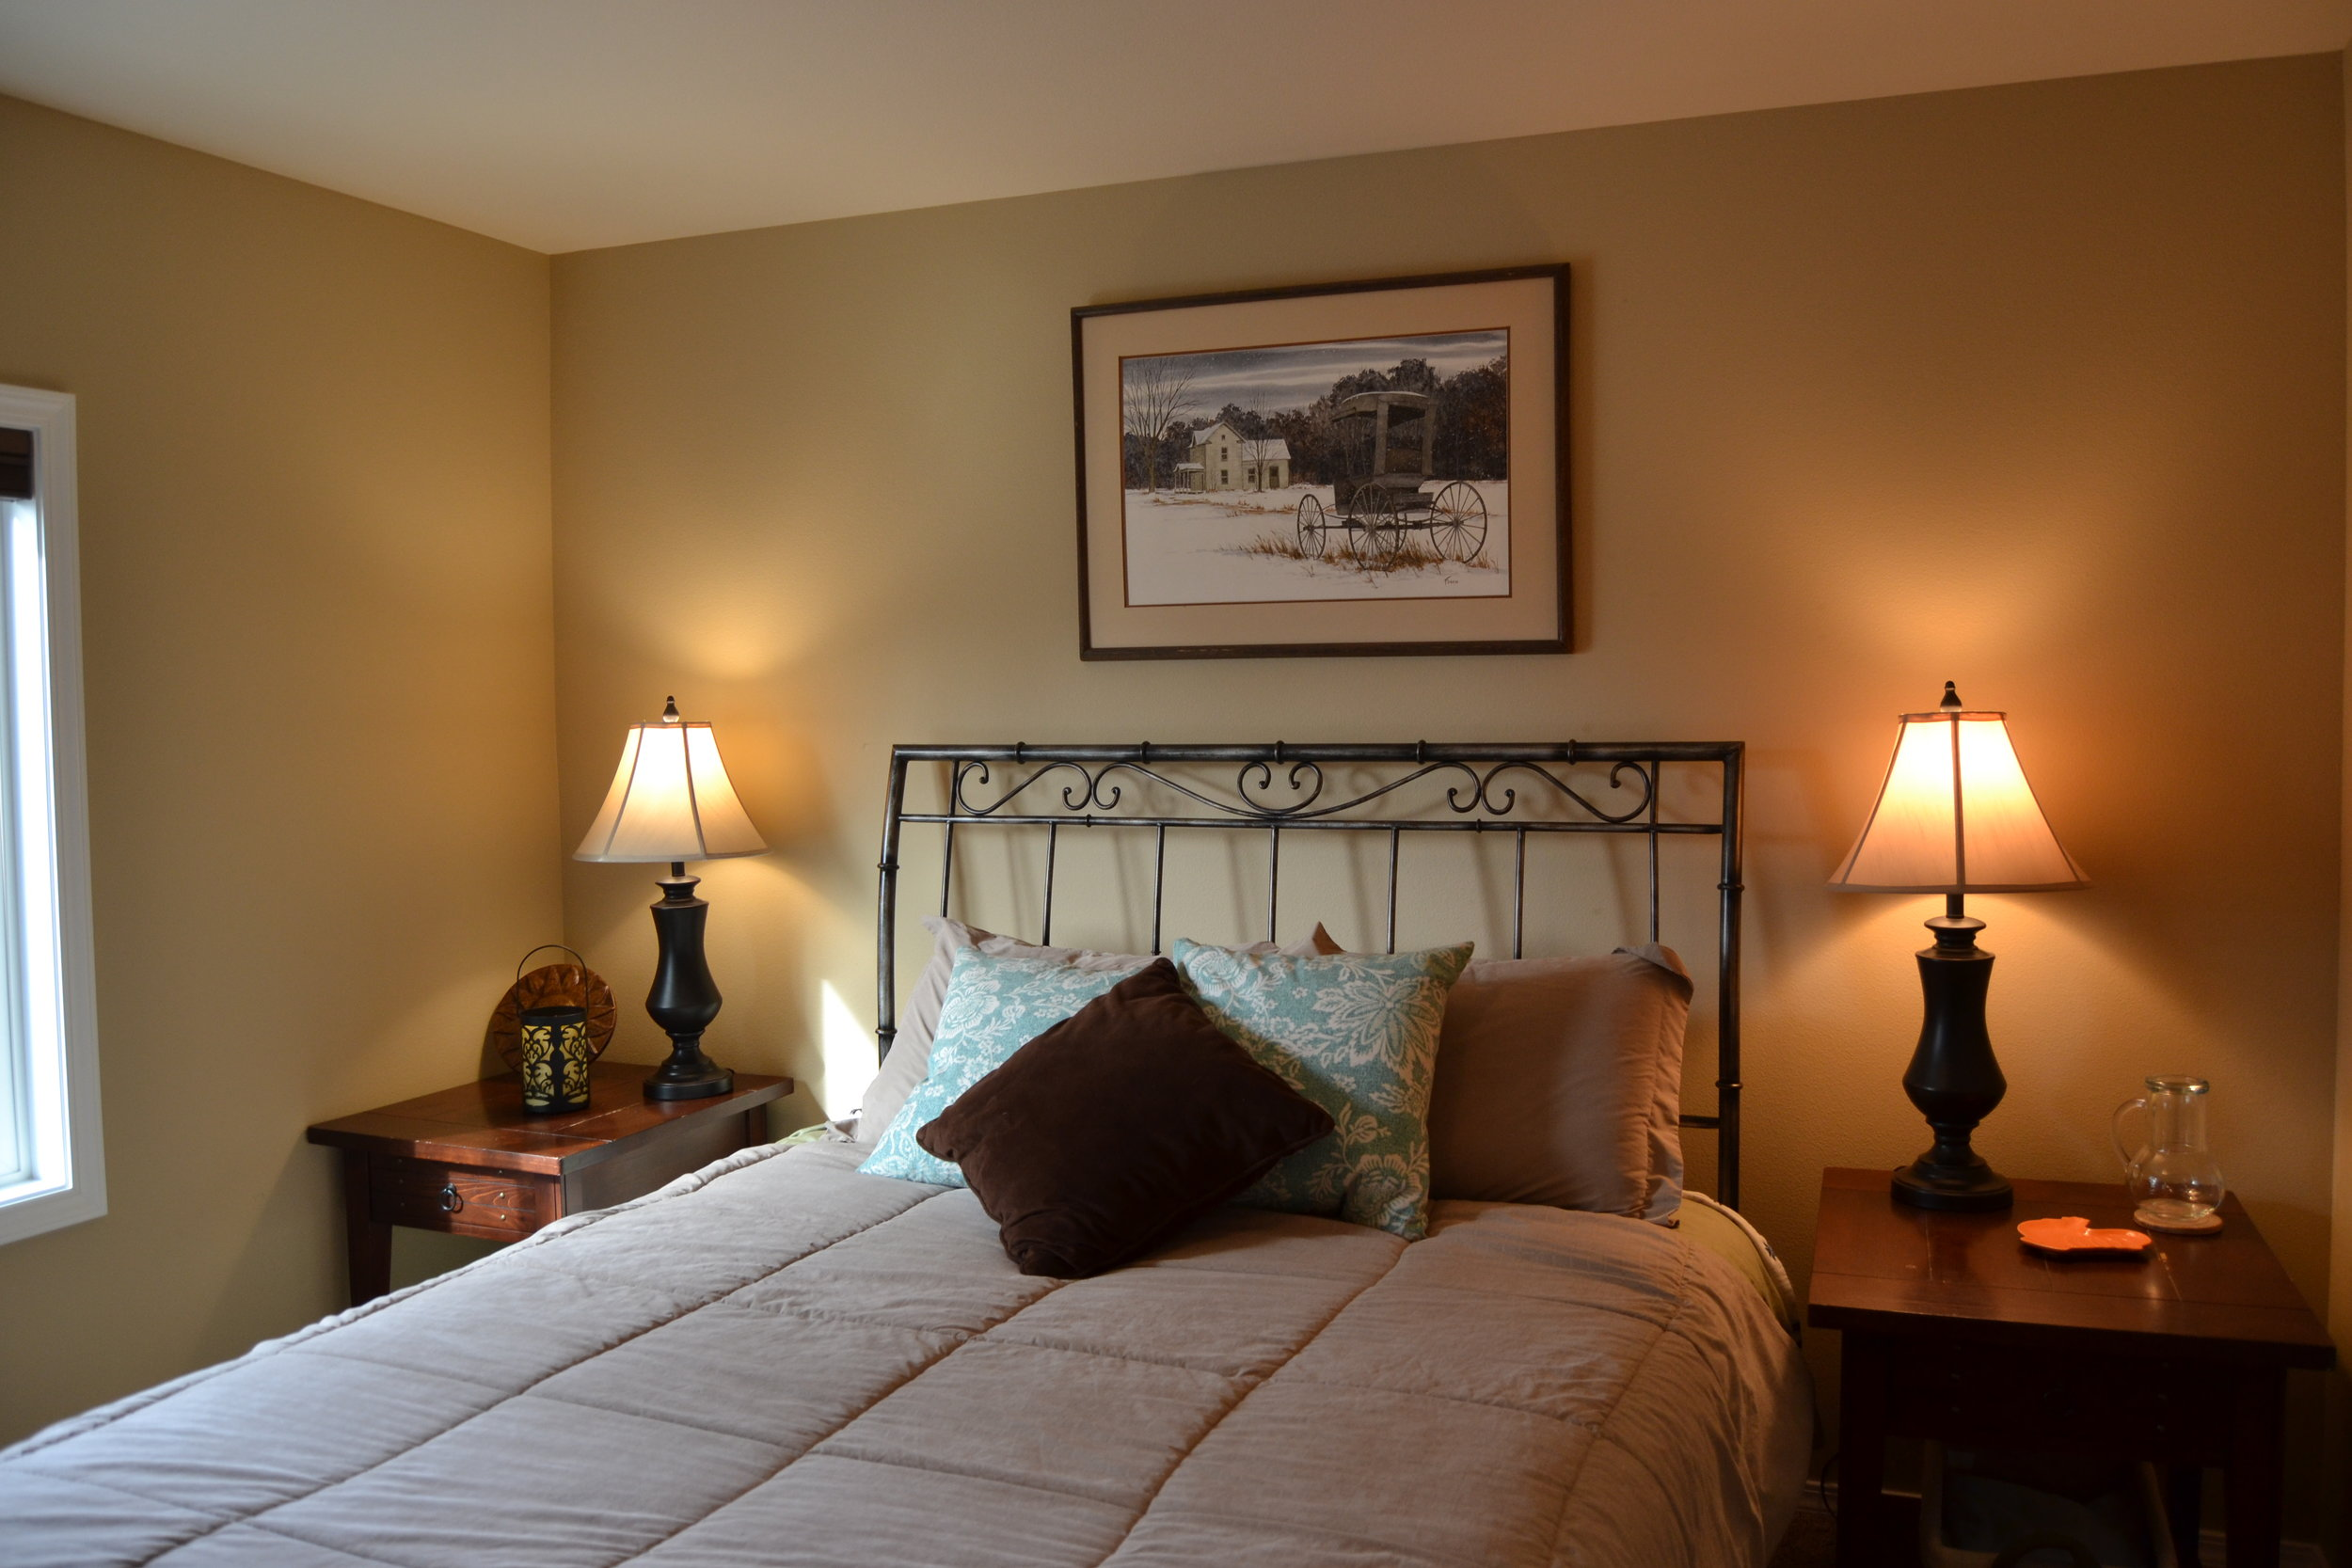 Your beautiful bedroom to rest after a wonderful day outside playing. You even have mountain views from your window.